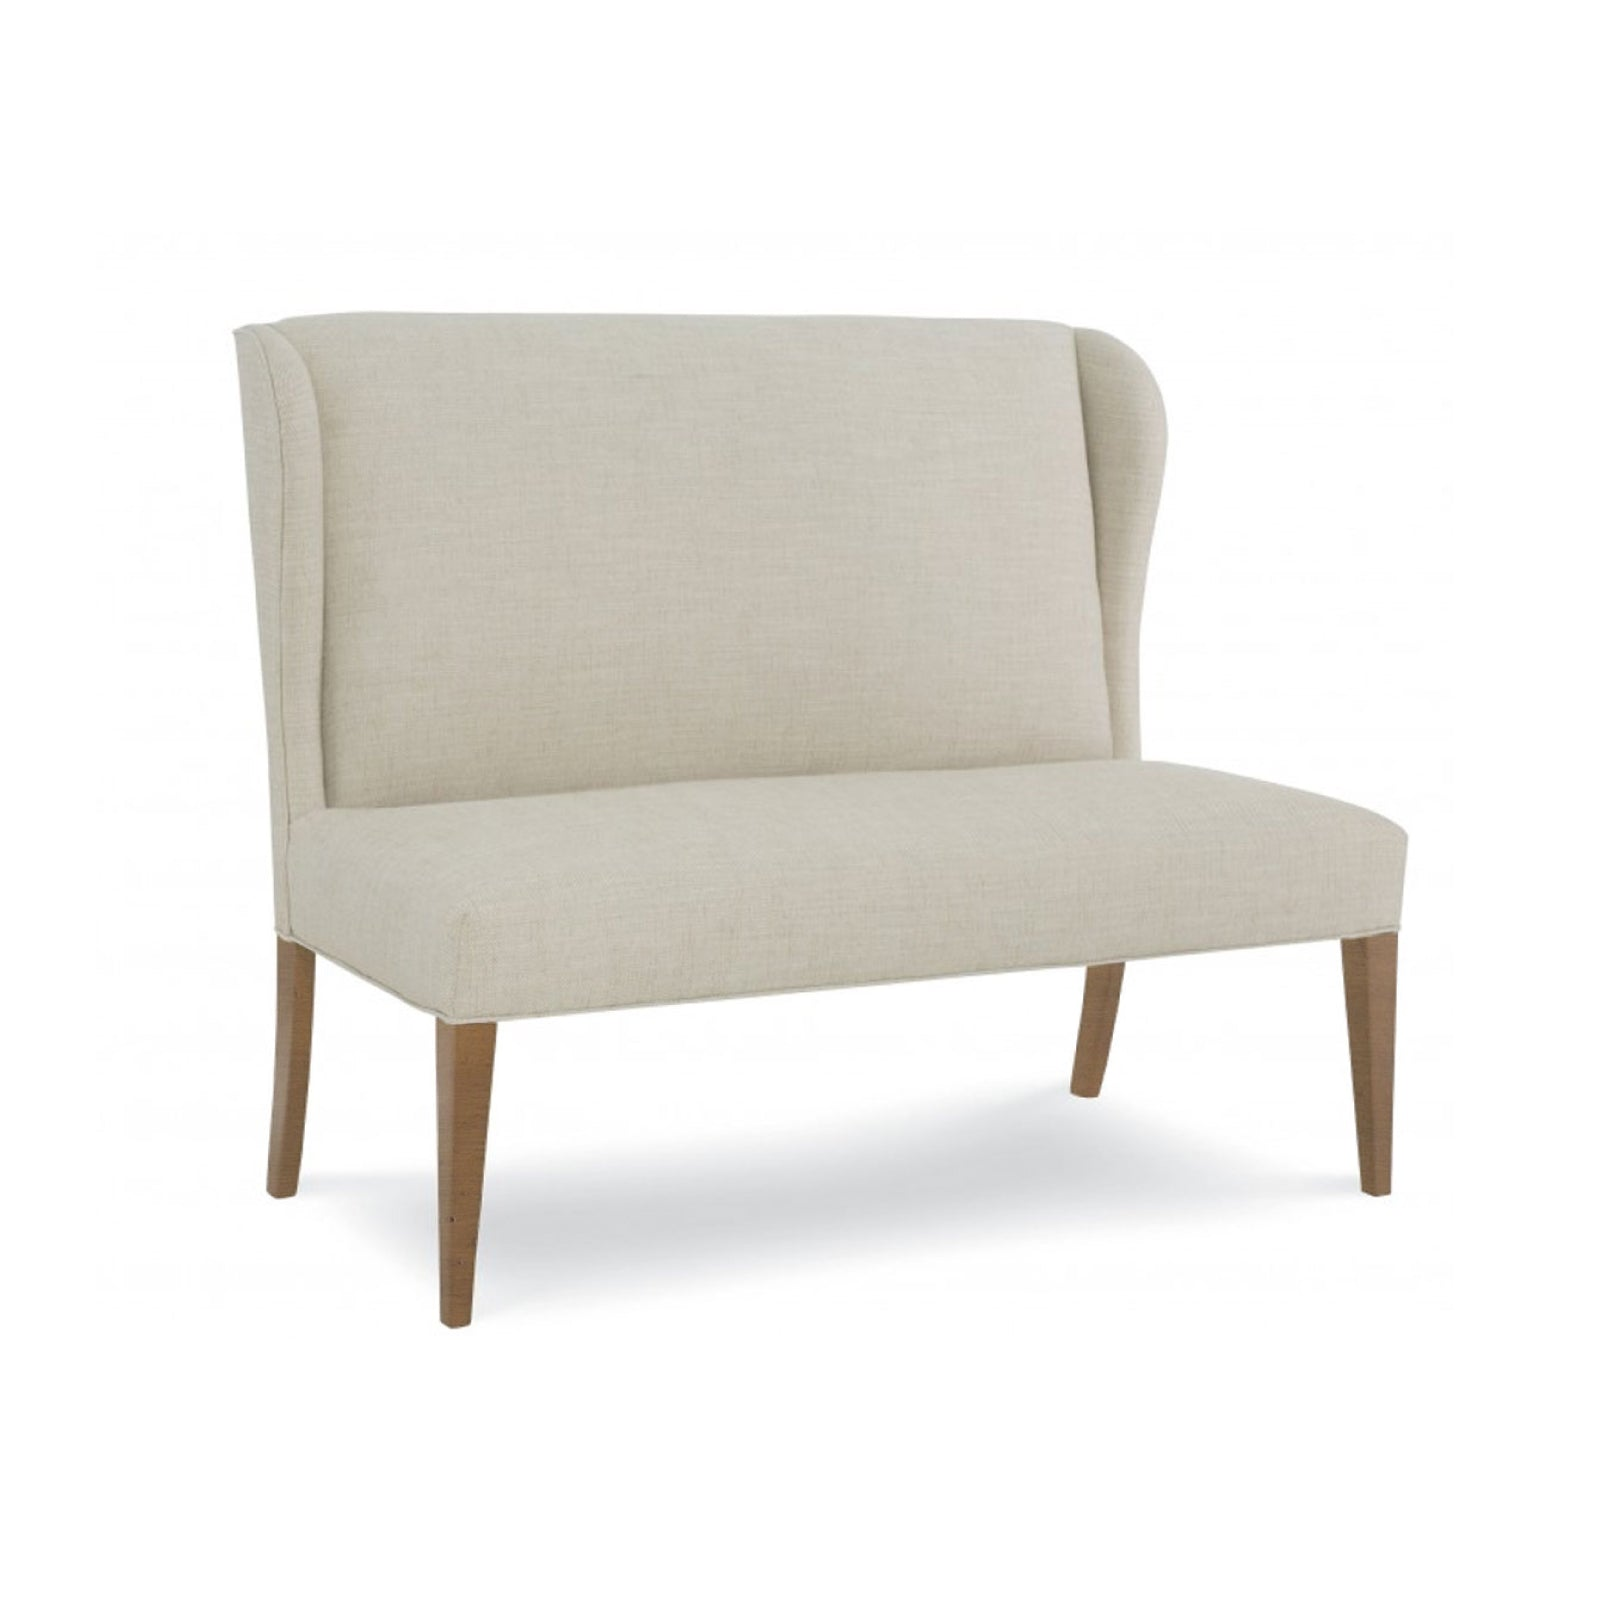 Marvin Upholstered Bench